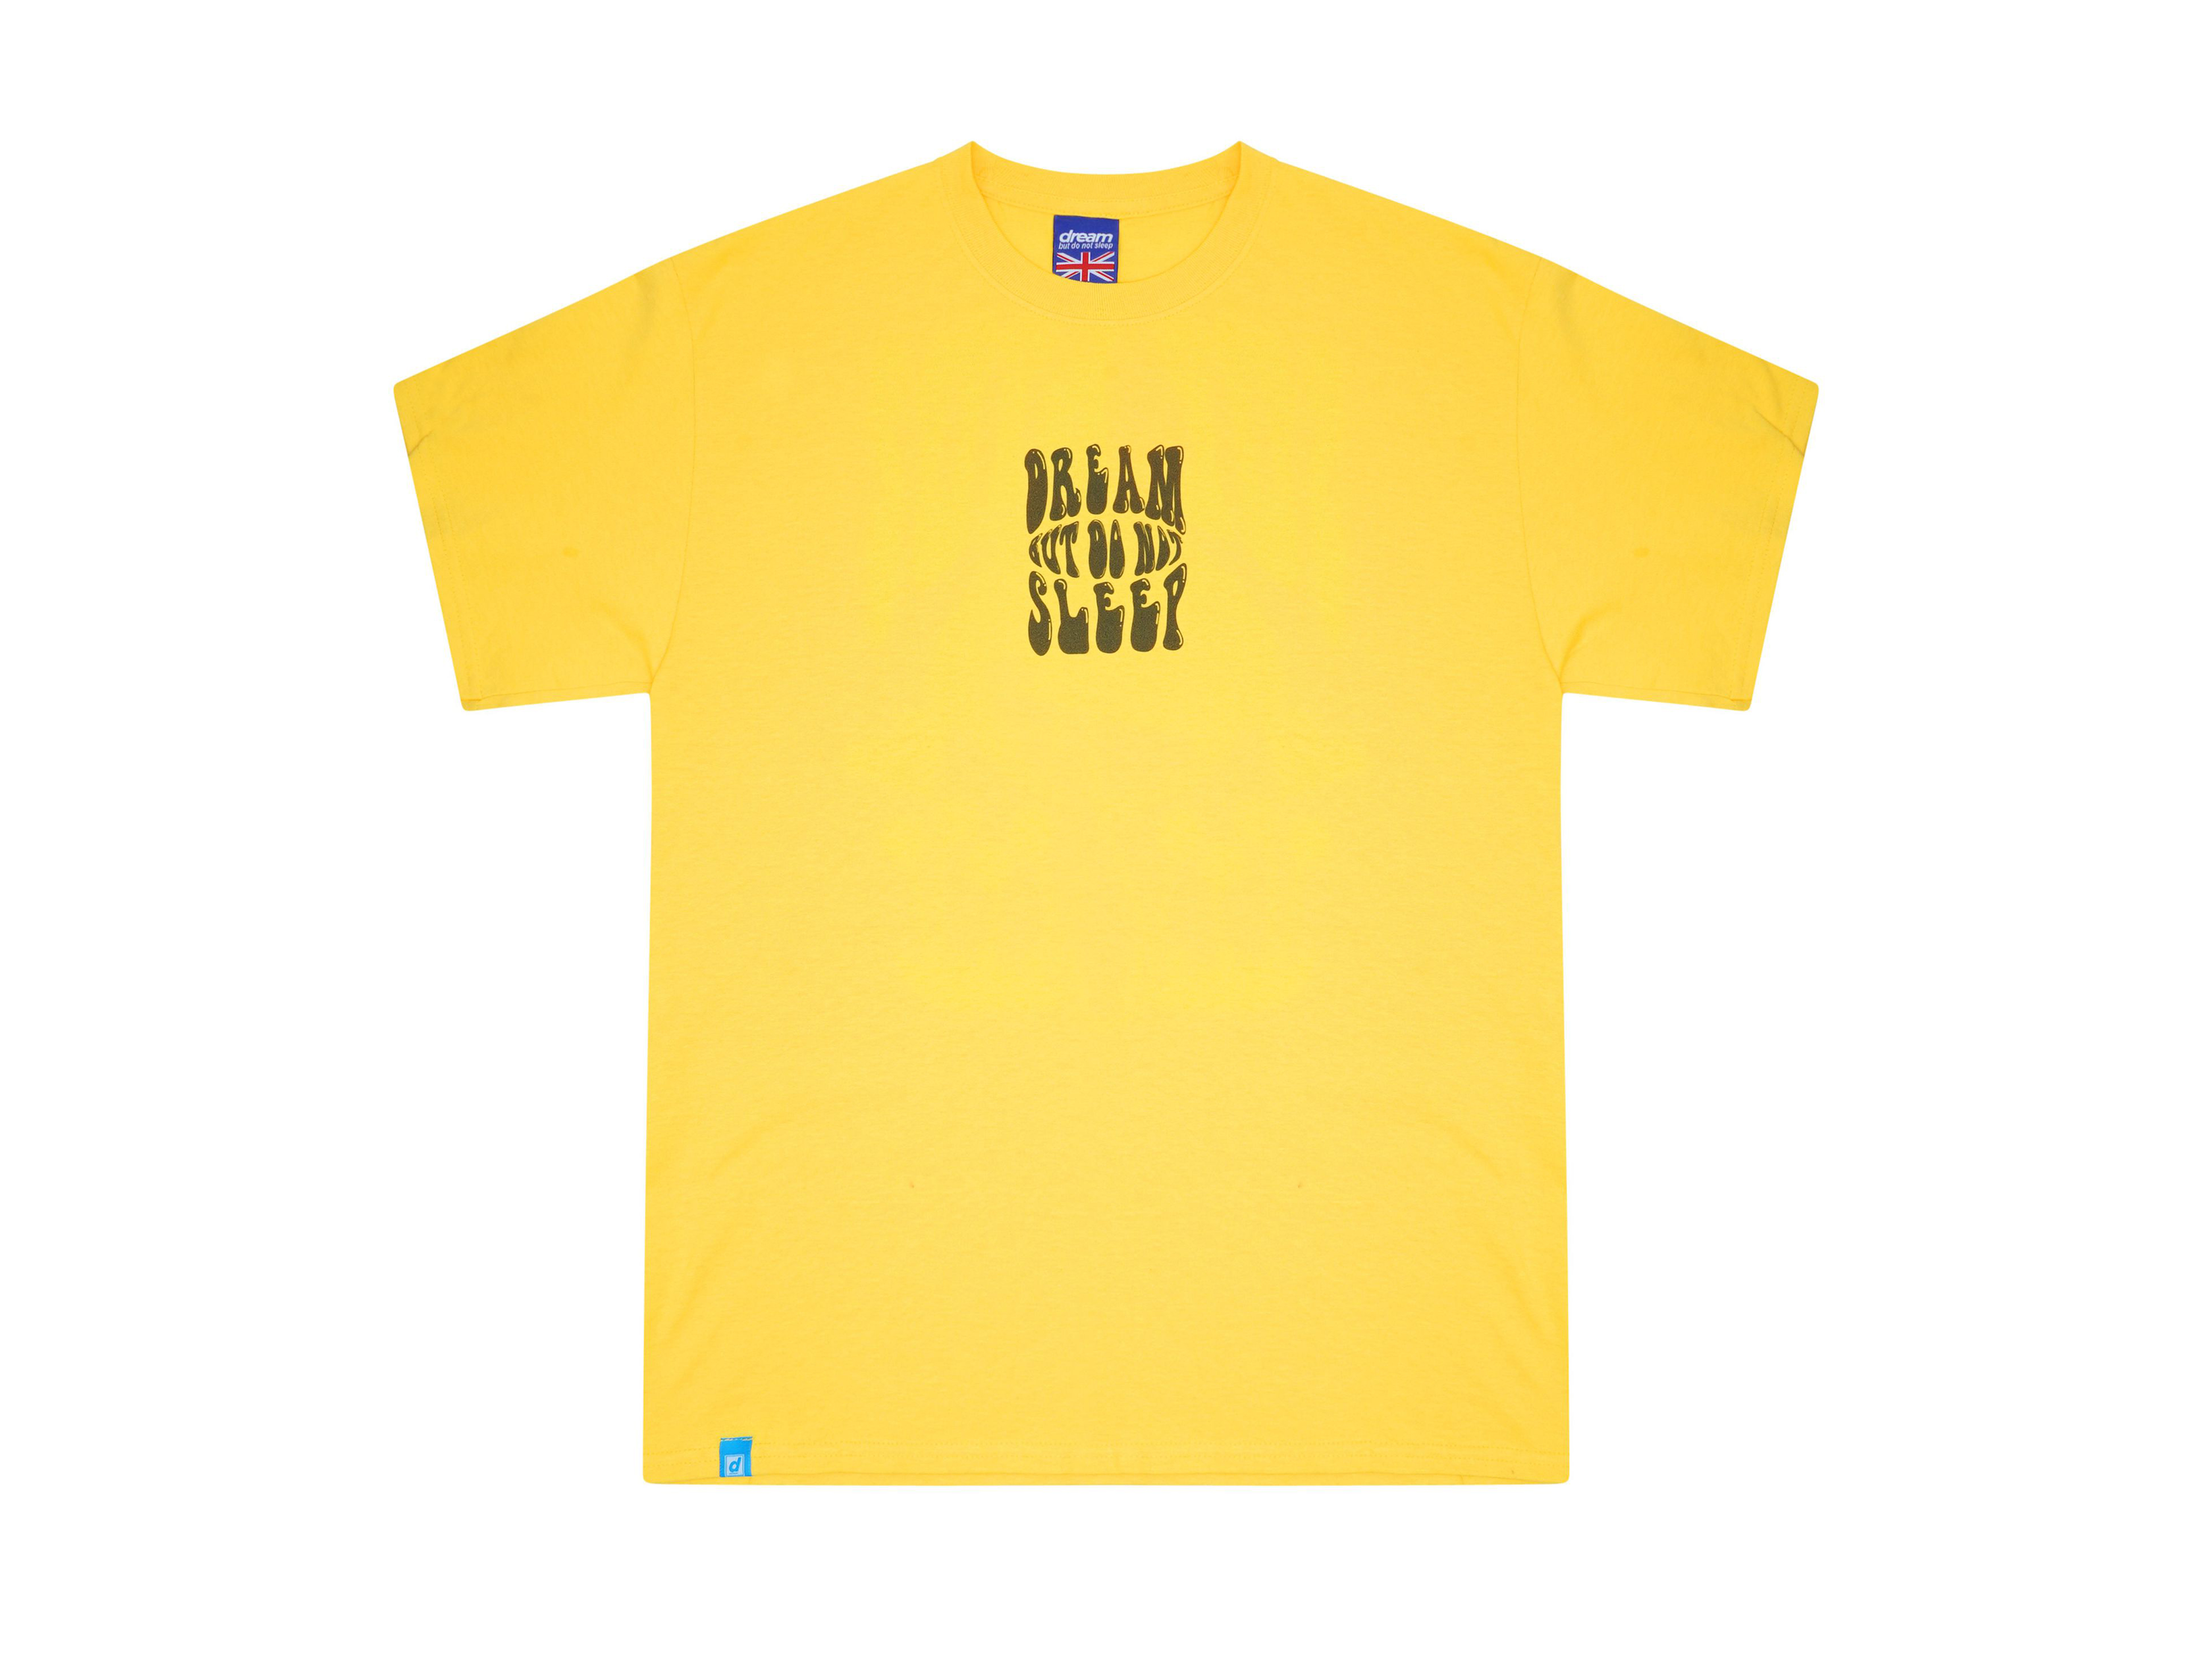 9819efc4f0ec Short Sleeved T-shirt In Yellow With Sup Bro Mushroom Print